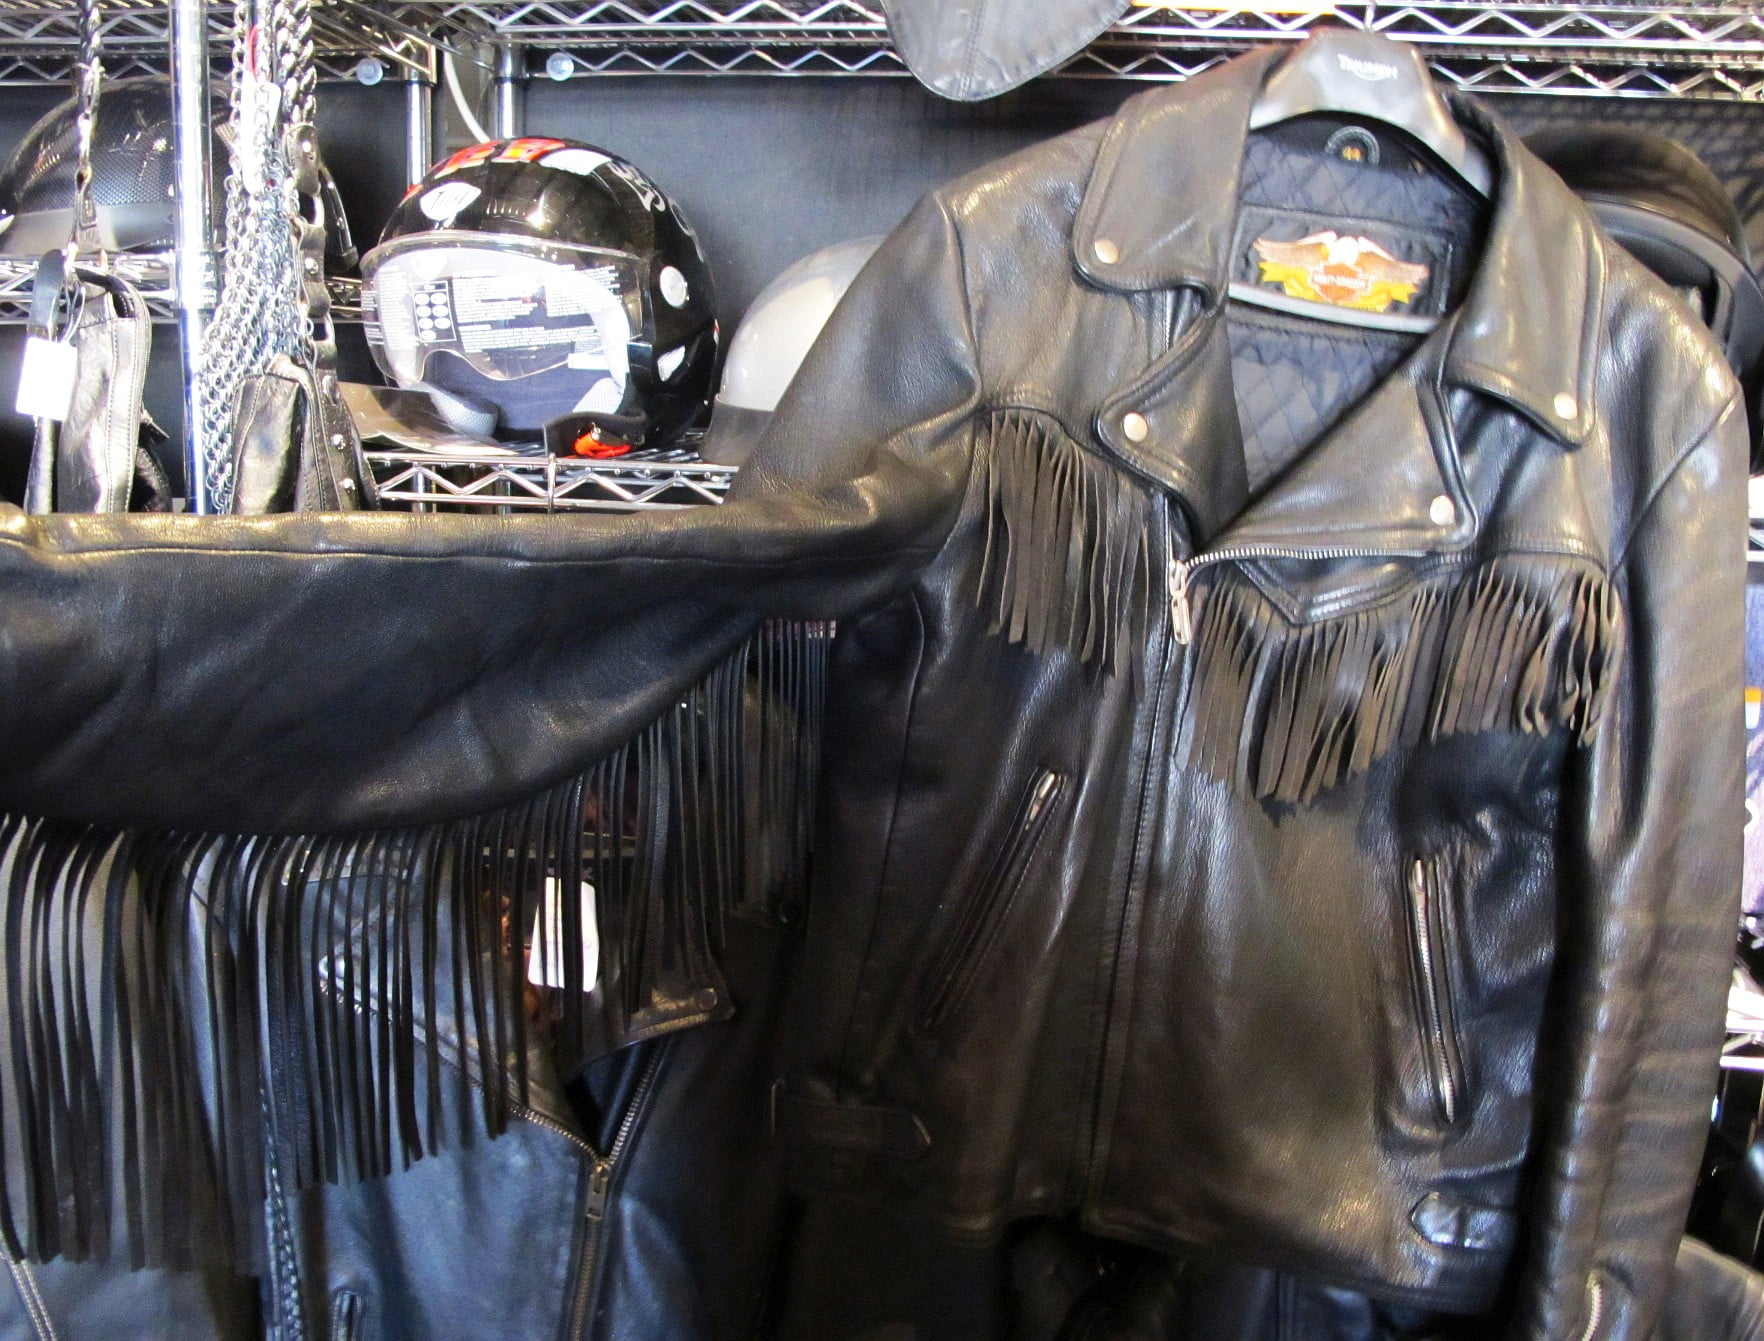 Friendliest Fringes by Harley Davidson